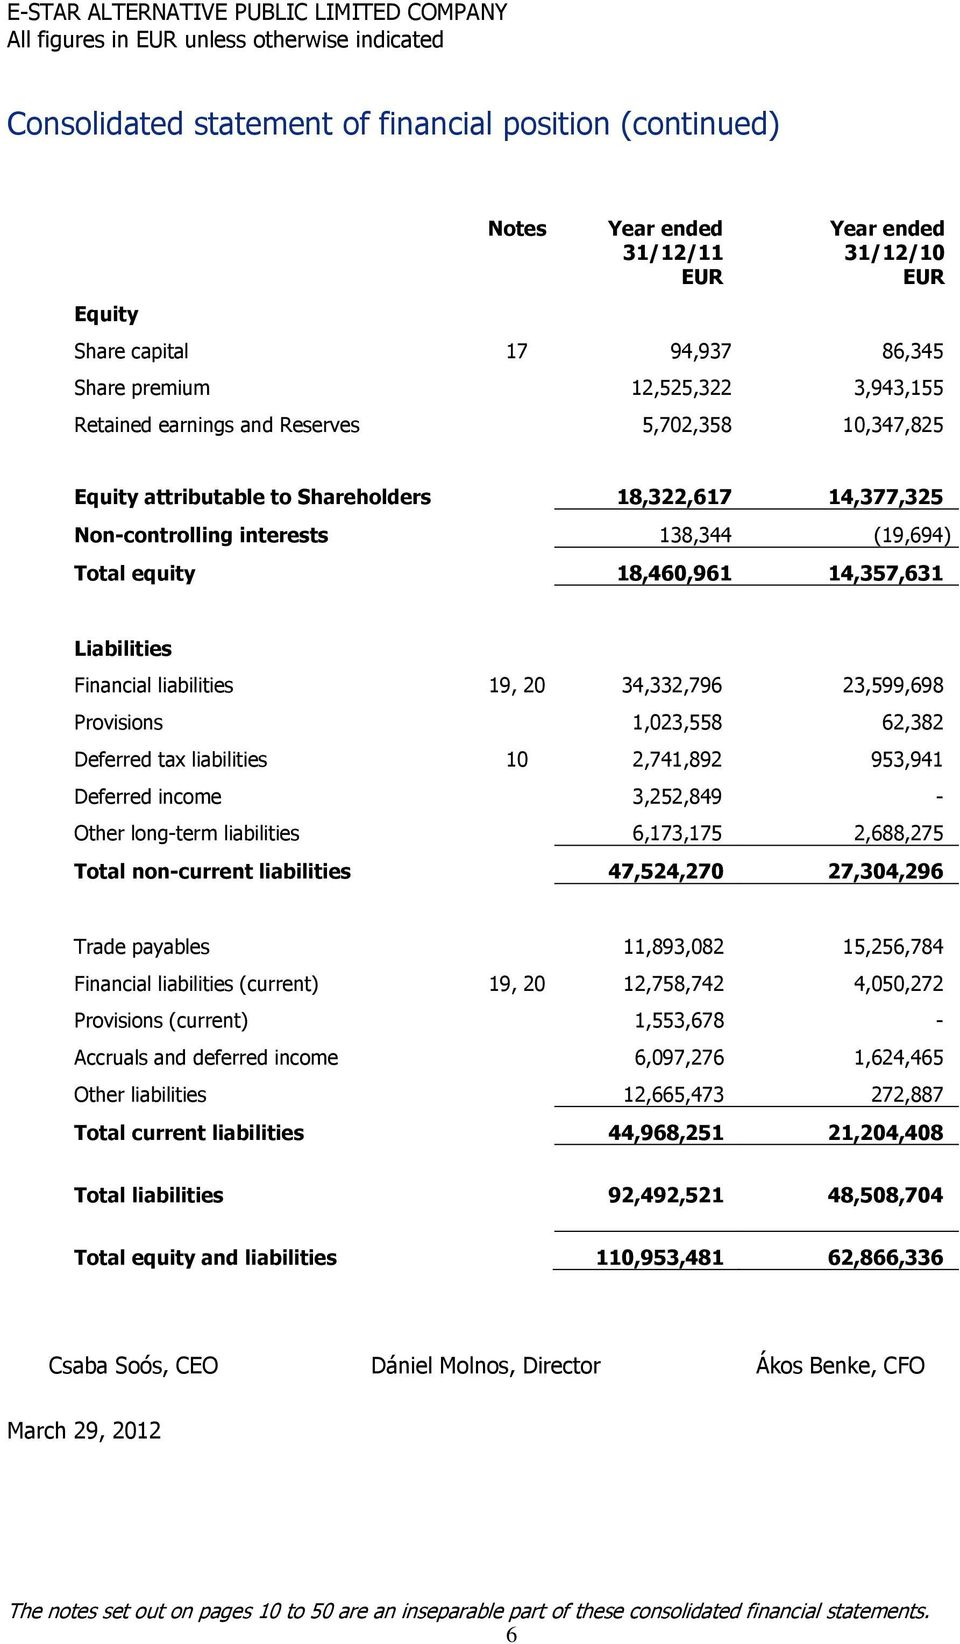 Financial liabilities 19, 20 34,332,796 23,599,698 Provisions 1,023,558 62,382 Deferred tax liabilities 10 2,741,892 953,941 Deferred income 3,252,849 - Other long-term liabilities 6,173,175